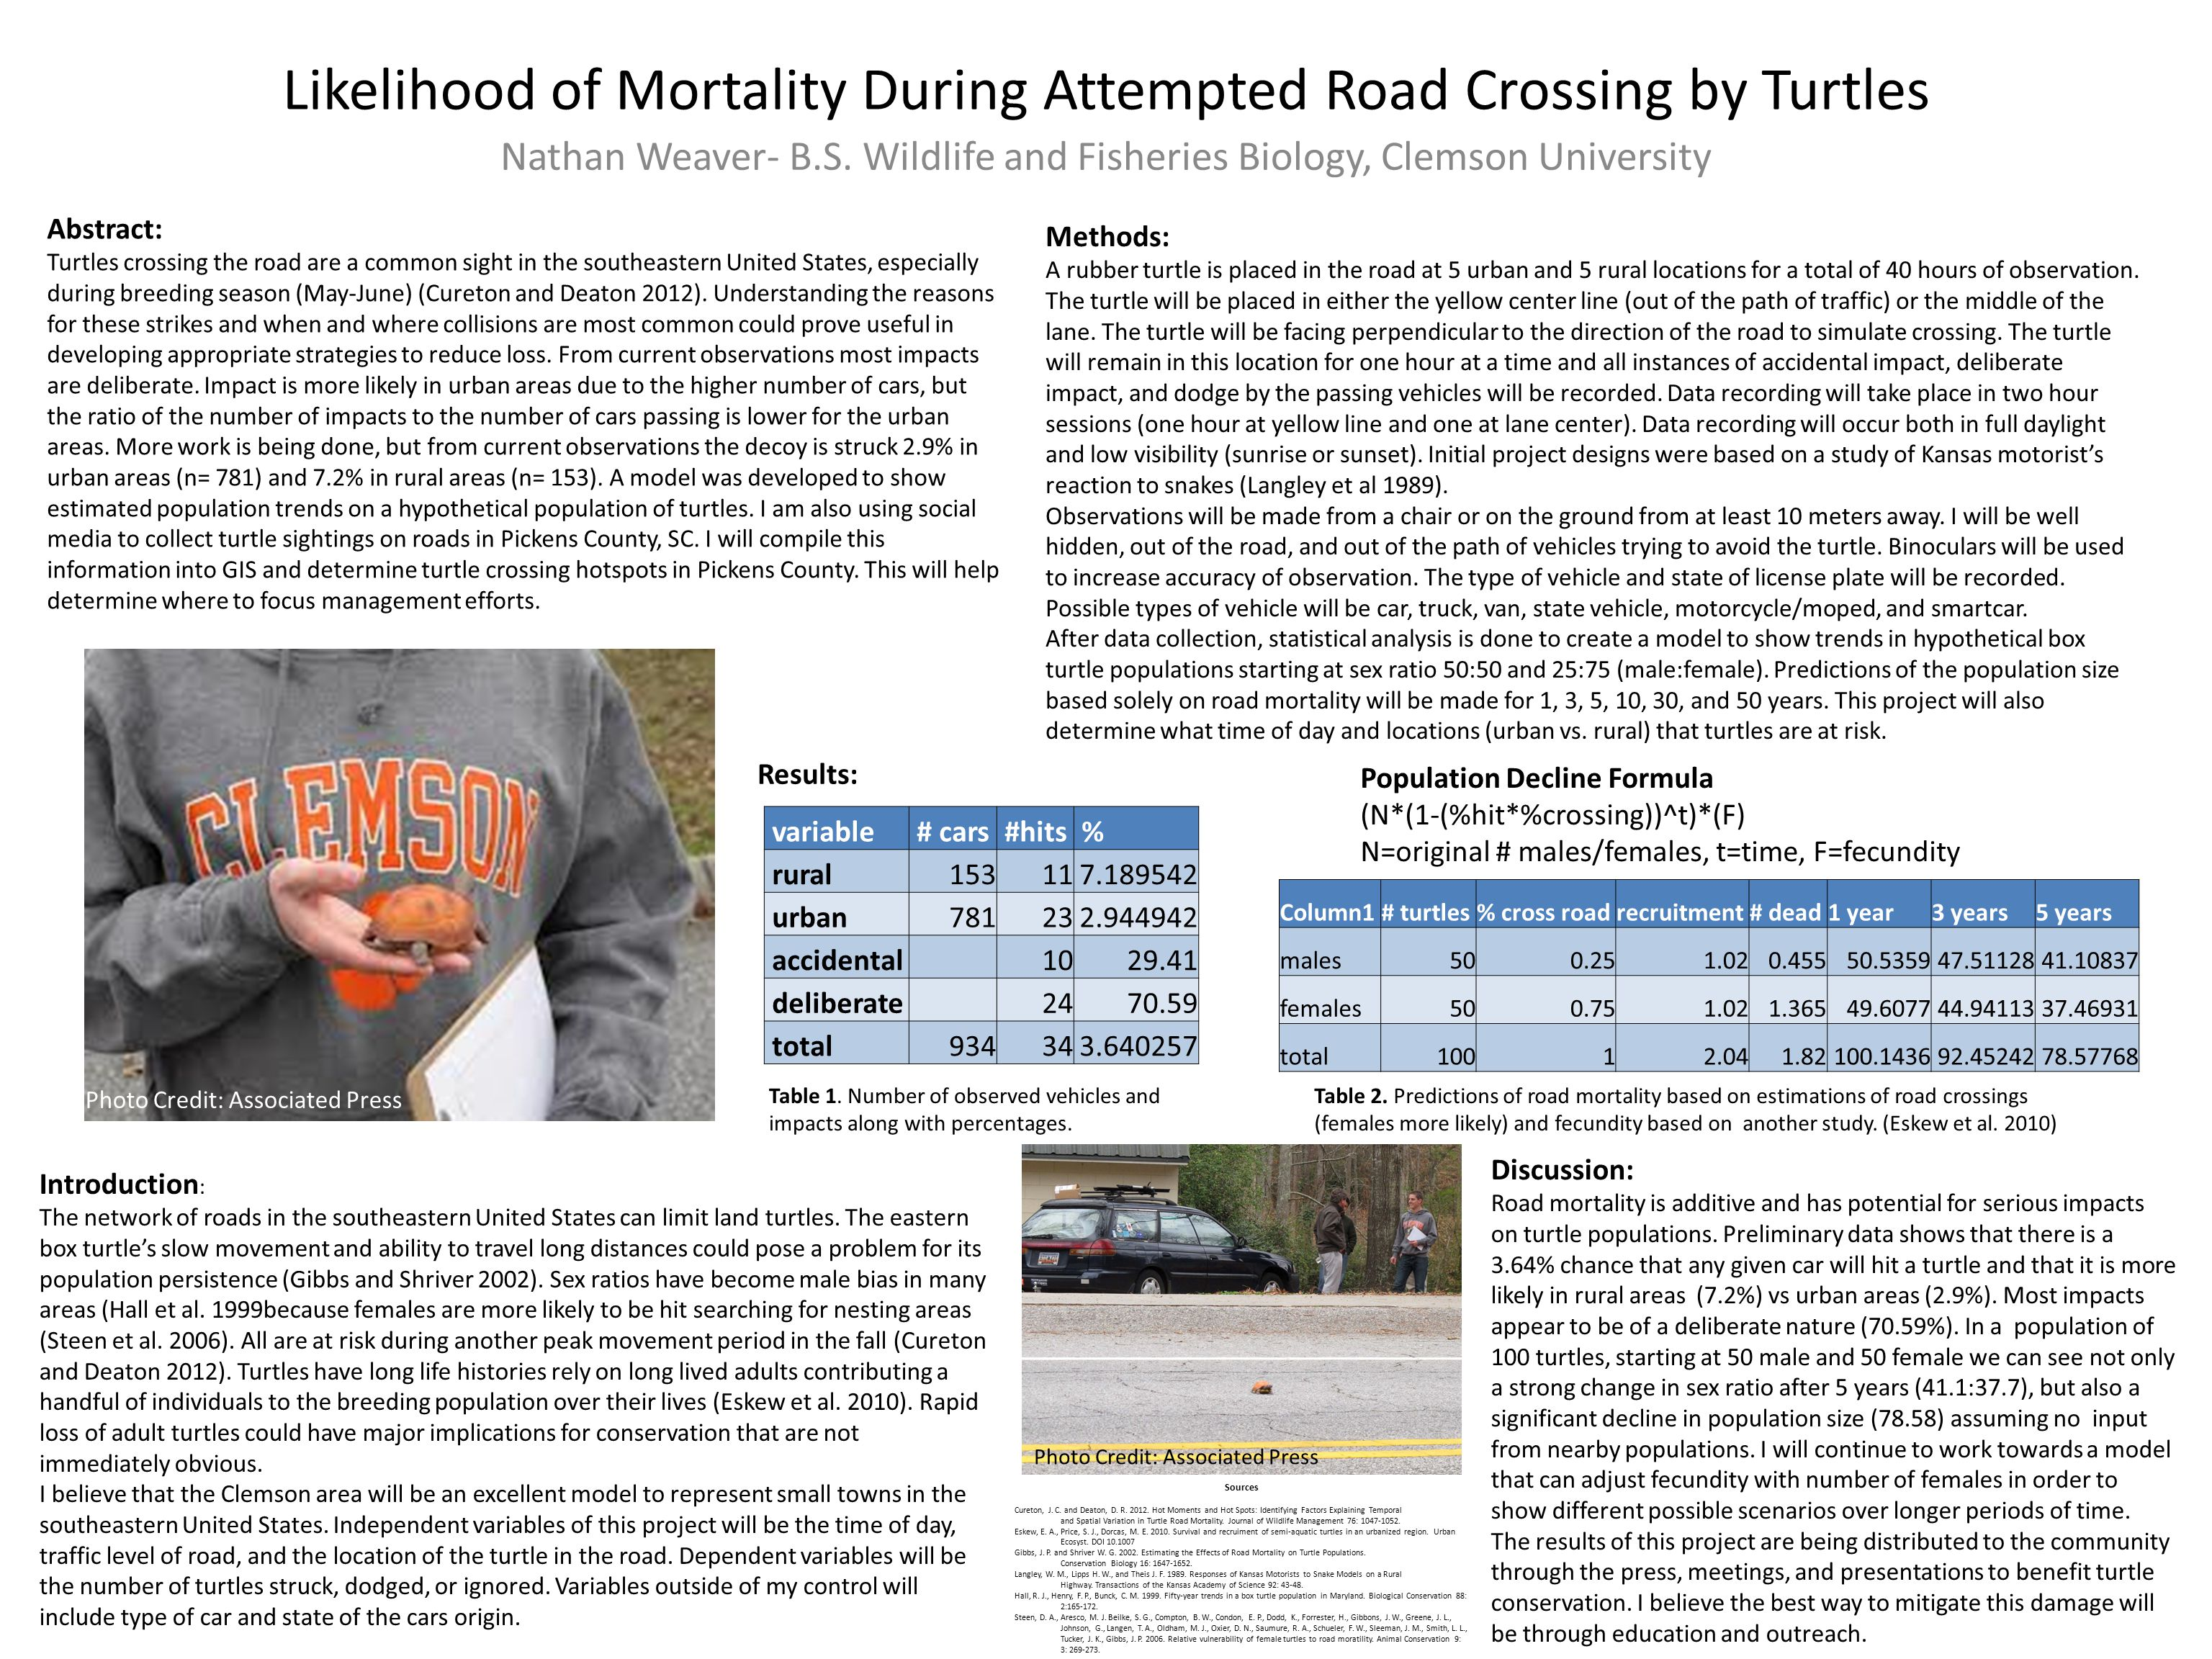 Likelihood of Mortality During Attempted Road Crossing by Turtles Nathan Weaver- B.S. Wildlife and Fisheries Biology, Clemson University Introduction